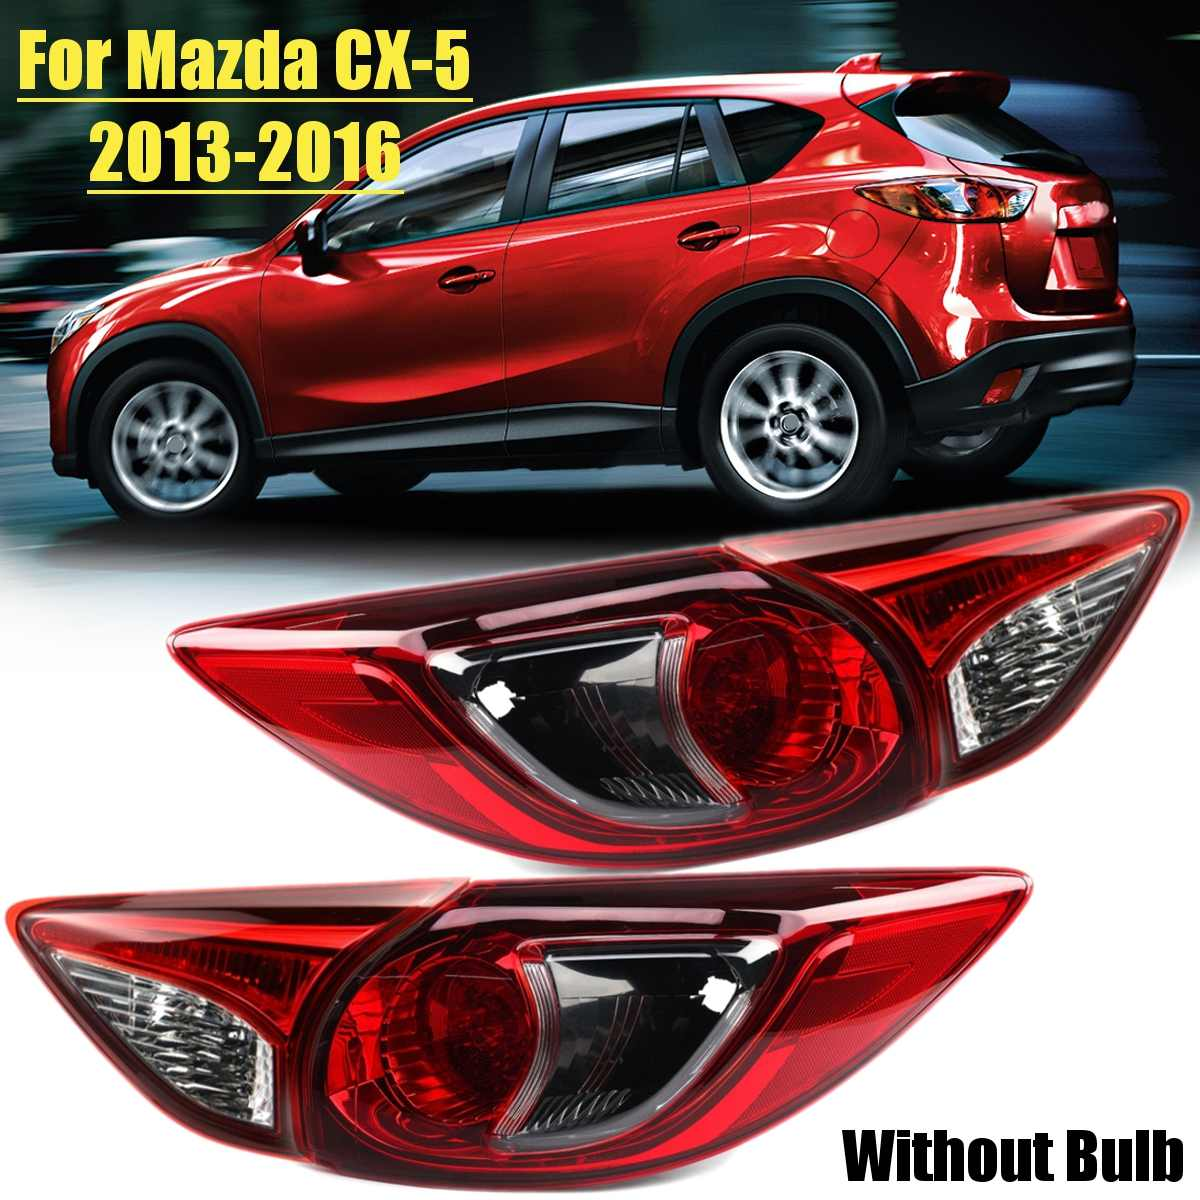 For Mazda Cx5 Cx 5 2013 2016 Car TailLight Lamp Housing Car Styling Rear Left Right Tail Light Lamp Reversing Brake Fog Light